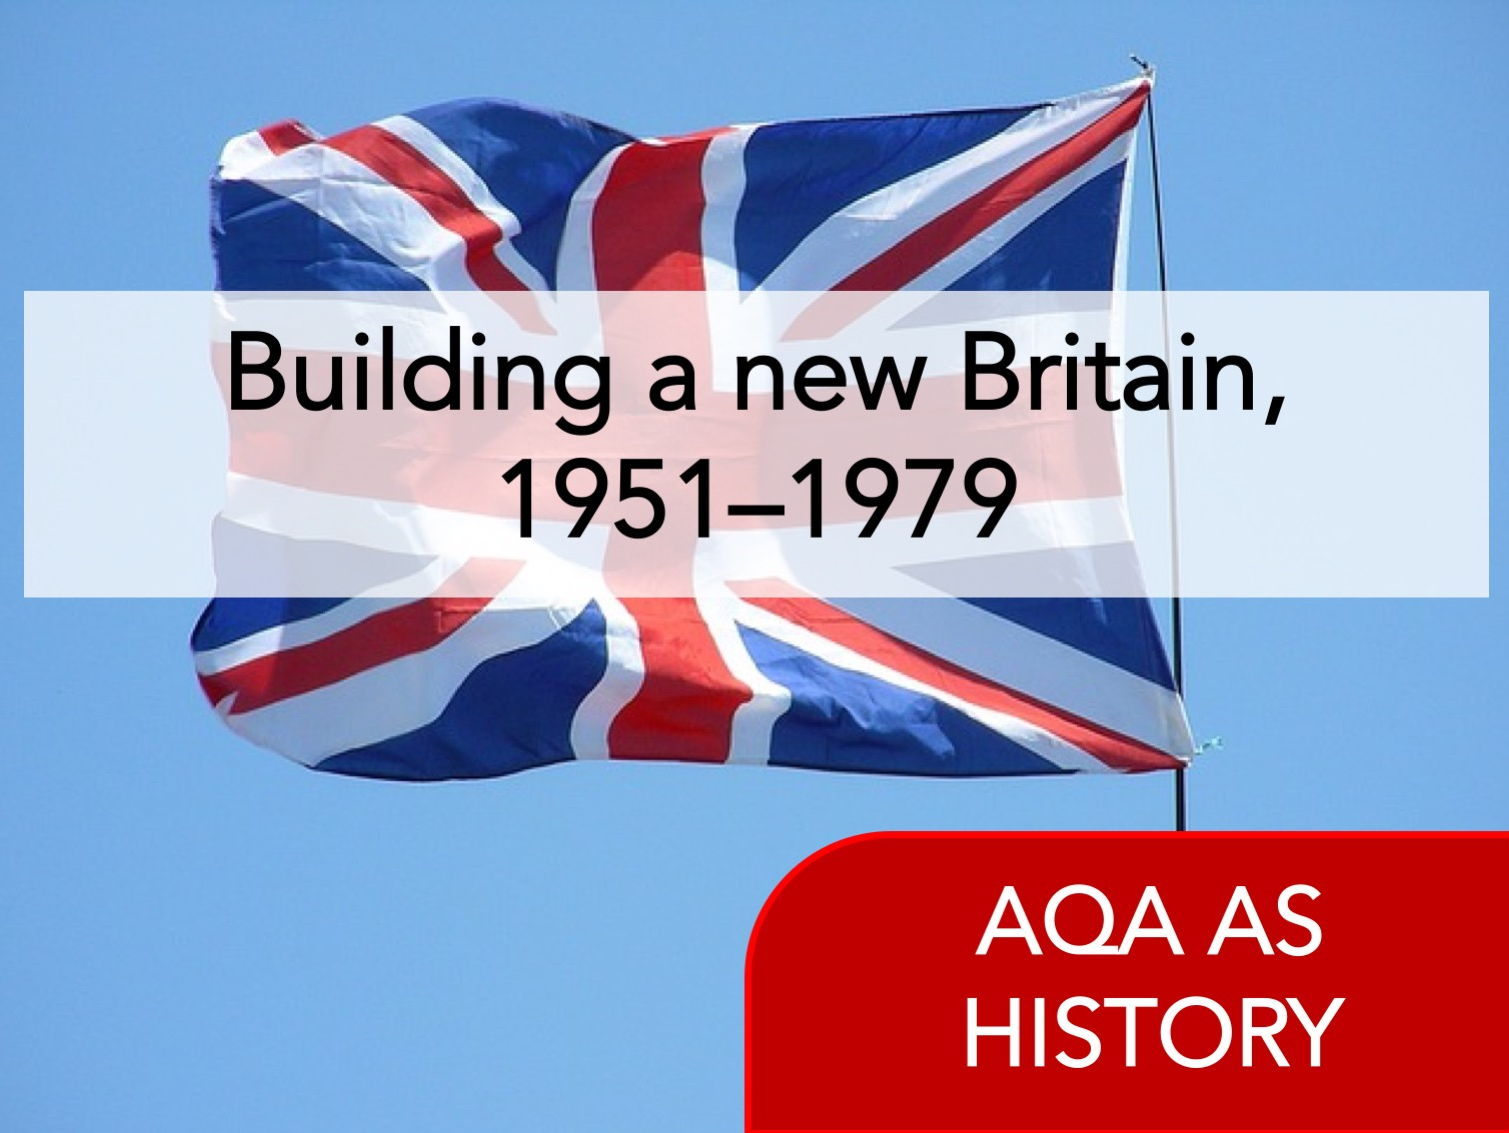 AQA History - Building a new Britain - 1951 - 79  [Whole Course]